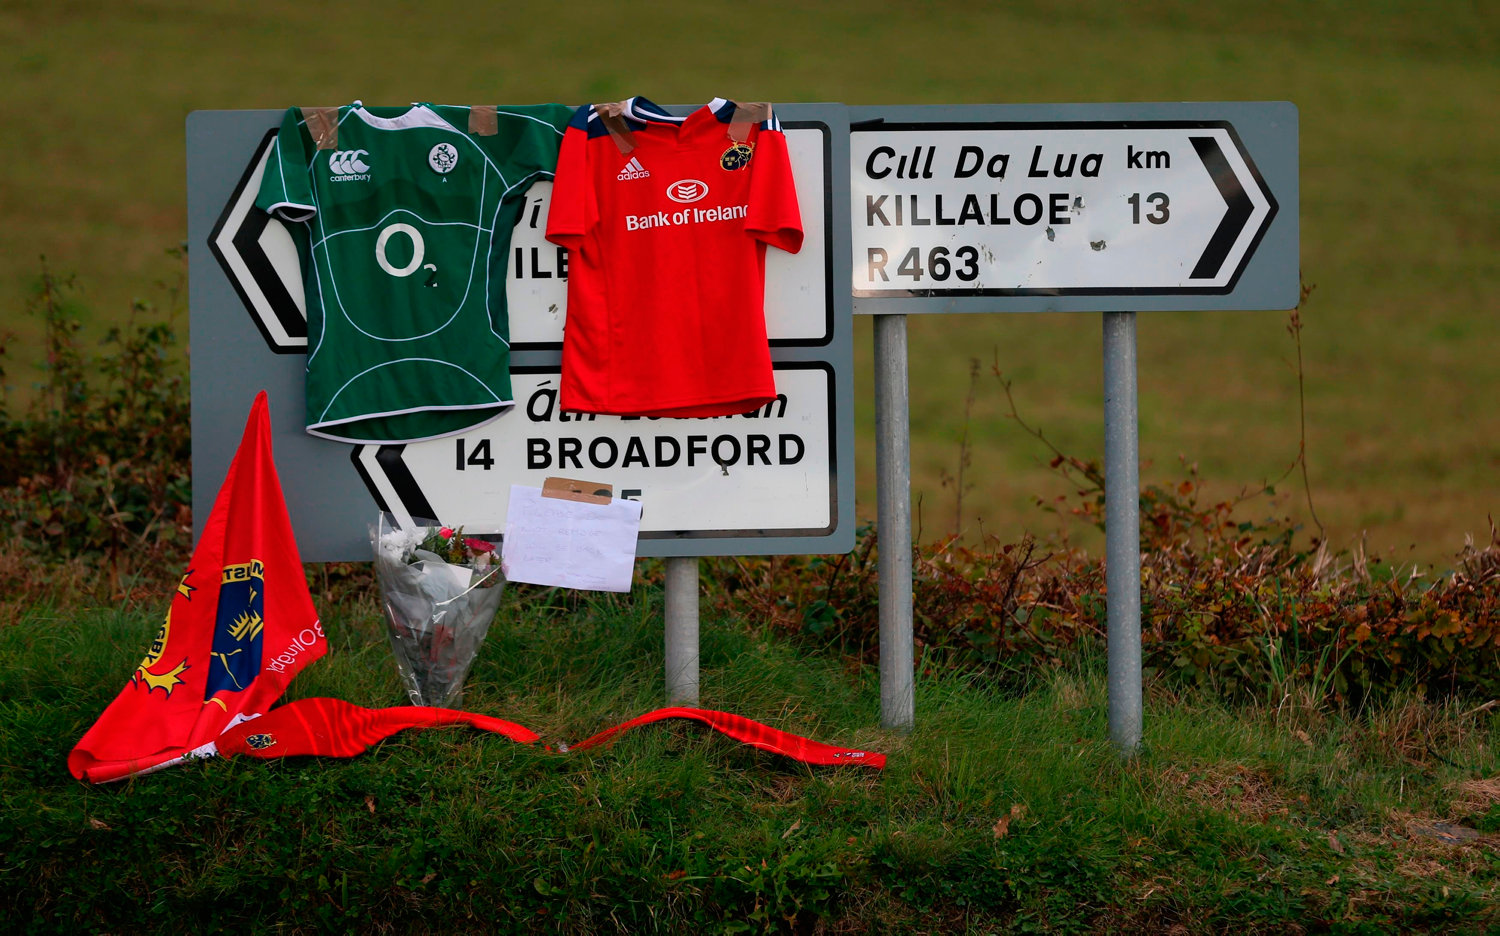 Signs point the way to Killaloe in County Clare where the coffin of Munster Rugby head coach Anthony Foley has been brought to repose in St. Flannan's Church, ahead off his funeral tomorrow. PRESS ASSOCIATION Photo. Picture date: Thursday October 20, 2016. See PA story DEATH Foley. Photo credit should read: Niall Carson/PA Wire